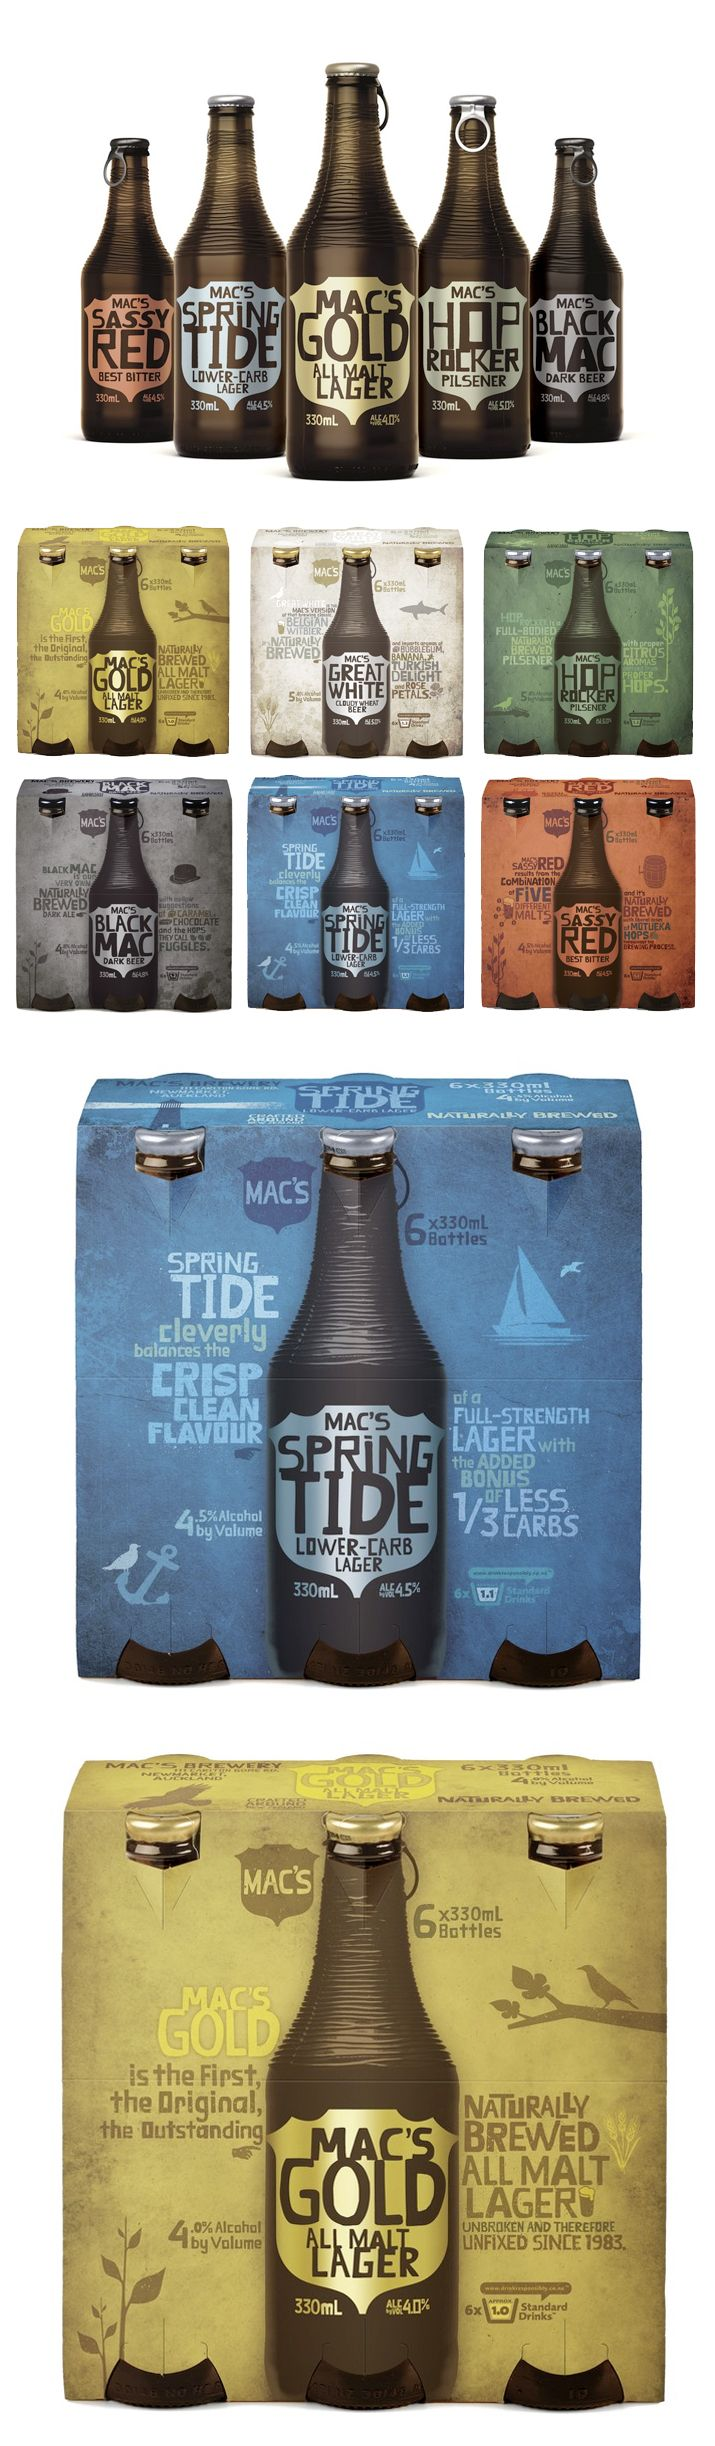 """Mac's Brewery - """"Really fun design by Shine for Mac's Brewery. The textured bottle is a nice touch."""""""